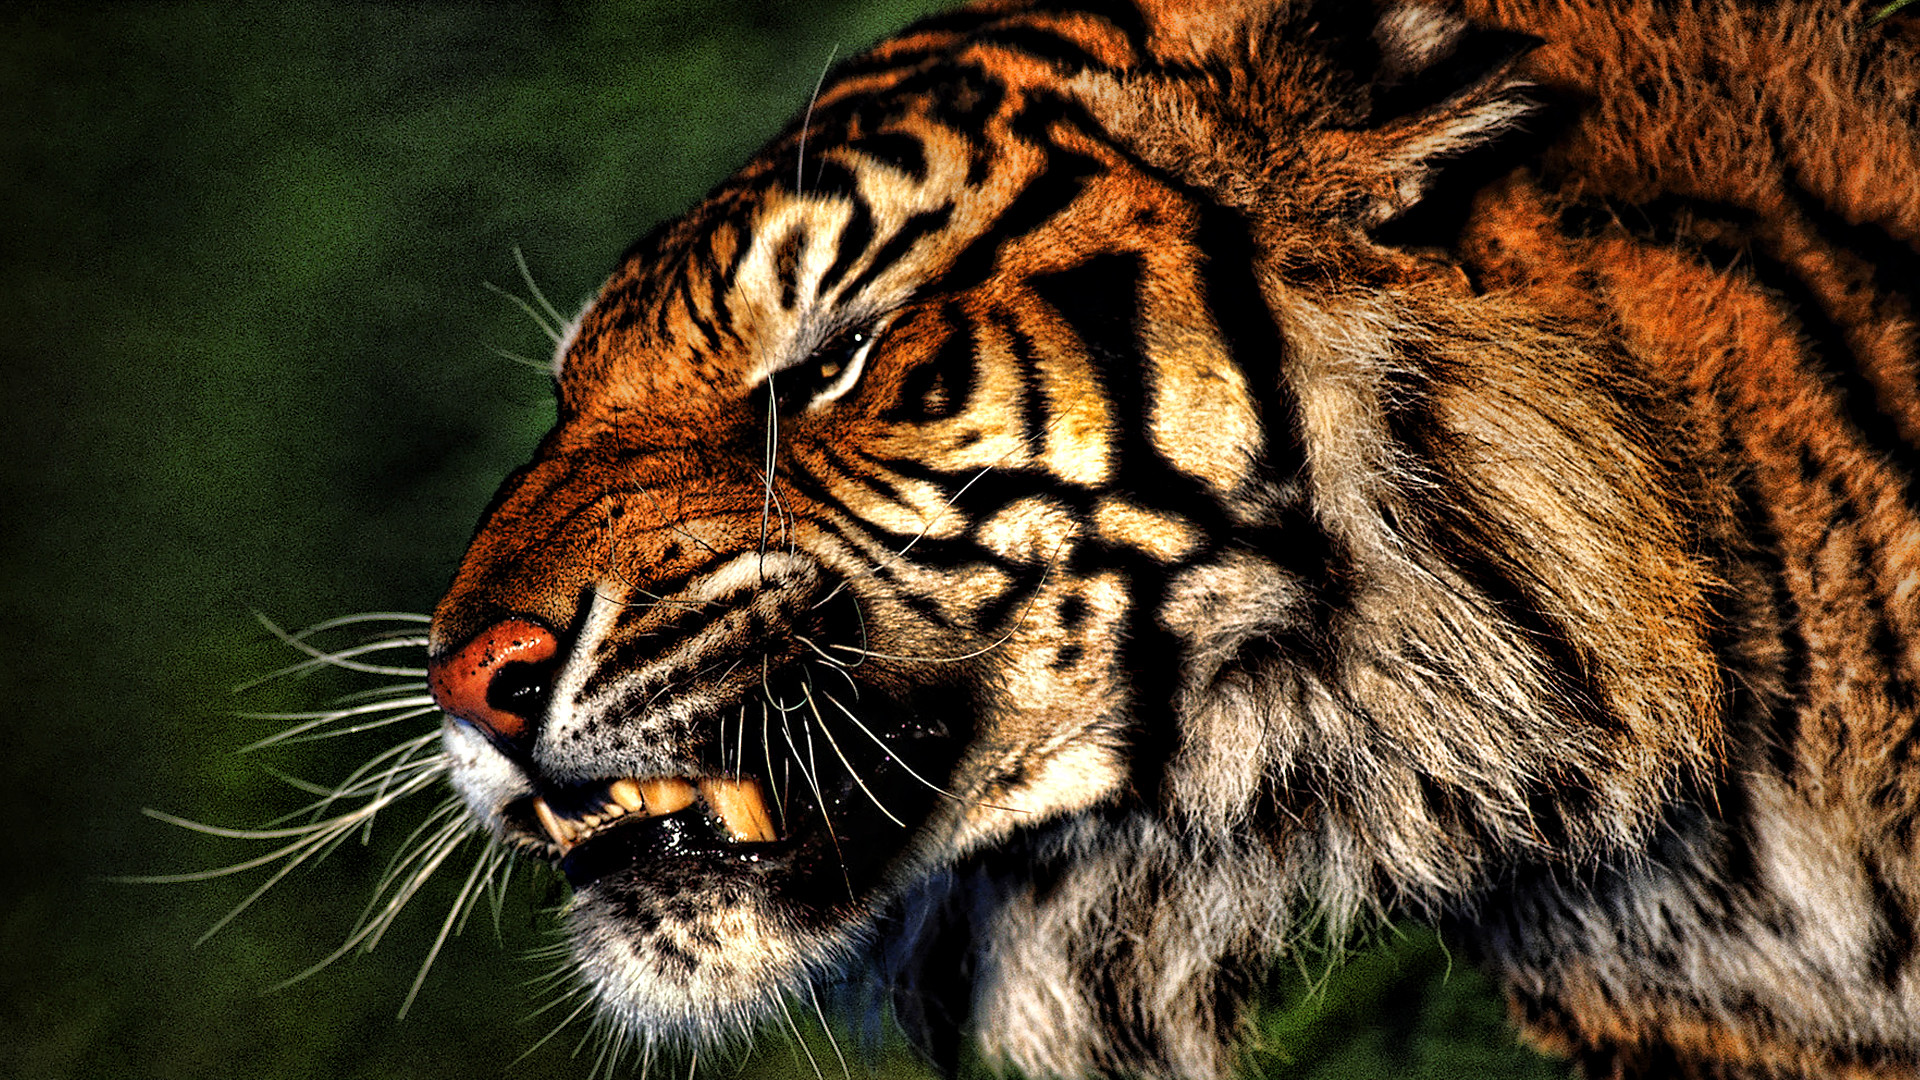 10 Most Popular Wild Animals Wallpapers Free Download Full: Wild Animals Wallpaper ·①